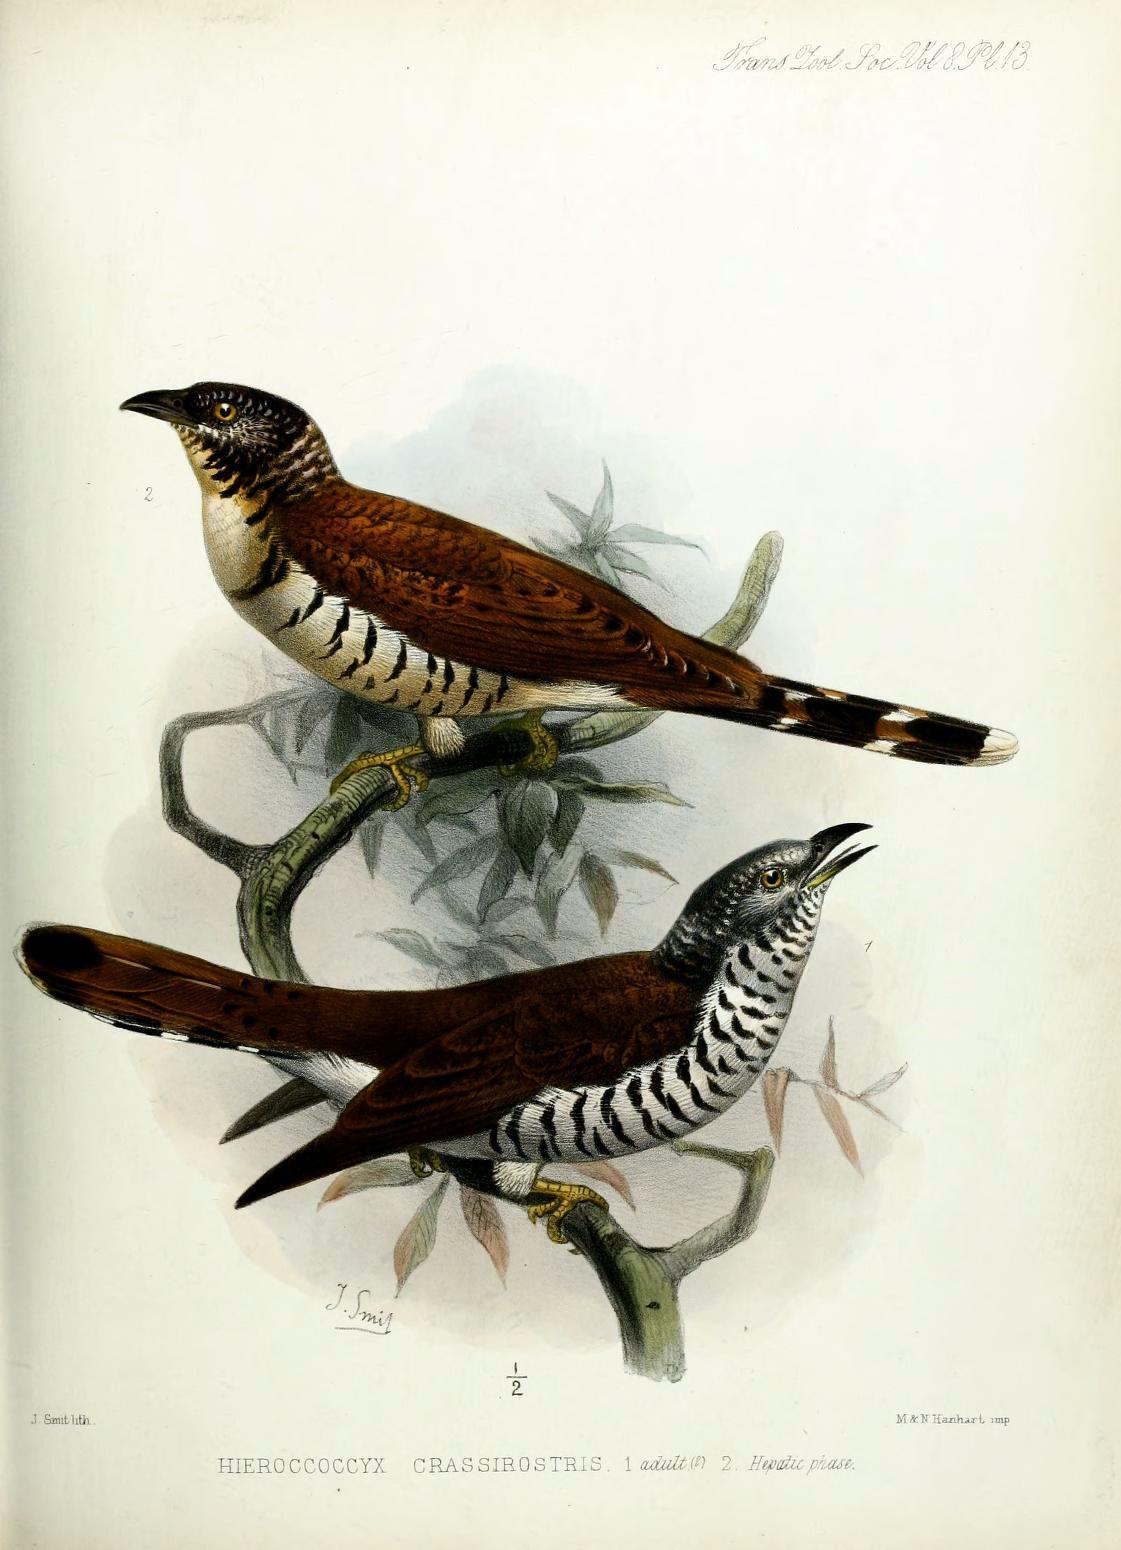 "biomedicalephemera:  Hieroccoccyx crassirostris - Sulawesi Cuckoo The Sulawesi Cuckoo (usually referred to as the Sulawesi Hawk-Cuckoo, but more related to the Typical Cuckoos) is endemic to Sulawesi Island, in Indonesia. Like the other Cuckoos, this species is what's known as a brood parasite. While a nest is unattended by the occupants, they'll come in, lay an egg, and leave. This is then repeated with several other nests in the area, until the clutch is laid. Depending on the species, the adult cuckoo may eject the occupant's eggs  prior to laying her own, or the cuckoo chick may eject its nest mates once it hatches. Because the chicks of brood parasites are larger and hatch earlier than the host's eggs, they divert all attention from the host's eggs. Birds (passerines especially) are pretty much ""hey there's a screaming chick, better feed it"", so little songbirds sometimes end up caring for and raising these big ol' cuckoo chicks without knowing something's off. Or maybe they do know and just can't do anything about it, but who am I to tell? Host birds are at least clever enough that if a female cuckoo lays her egg in the nest of a bird that has differently-colored eggs from her, they other bird typically ejects the cuckoo egg and lays another clutch of her own. Transactions of the Zoological Society of London. 1874."